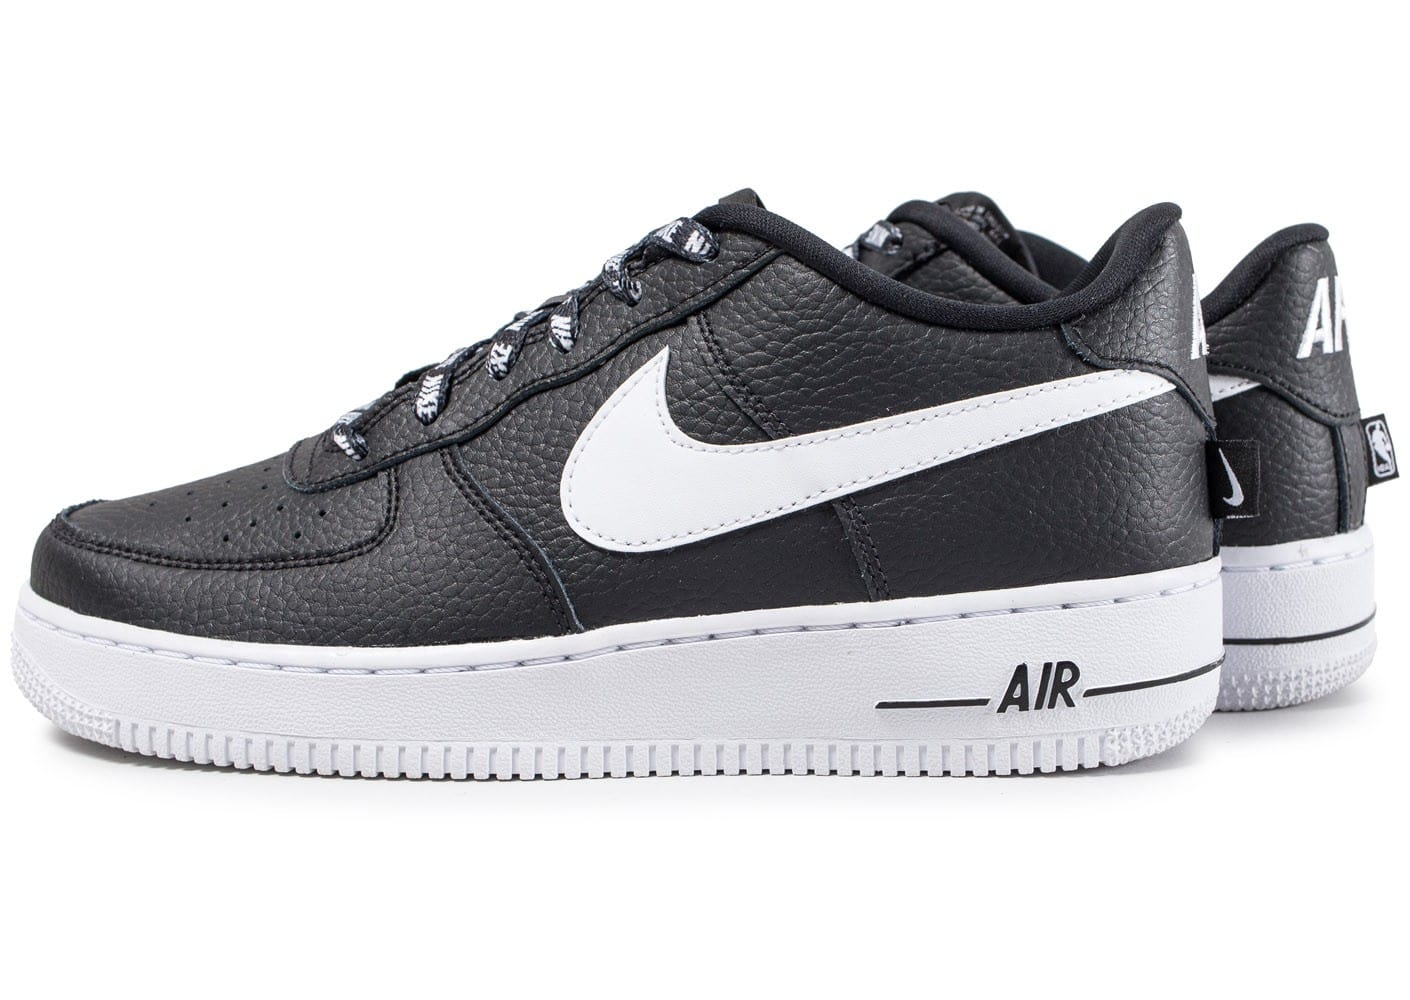 nike air force 1 lv8 nba noire et blanche chaussures. Black Bedroom Furniture Sets. Home Design Ideas